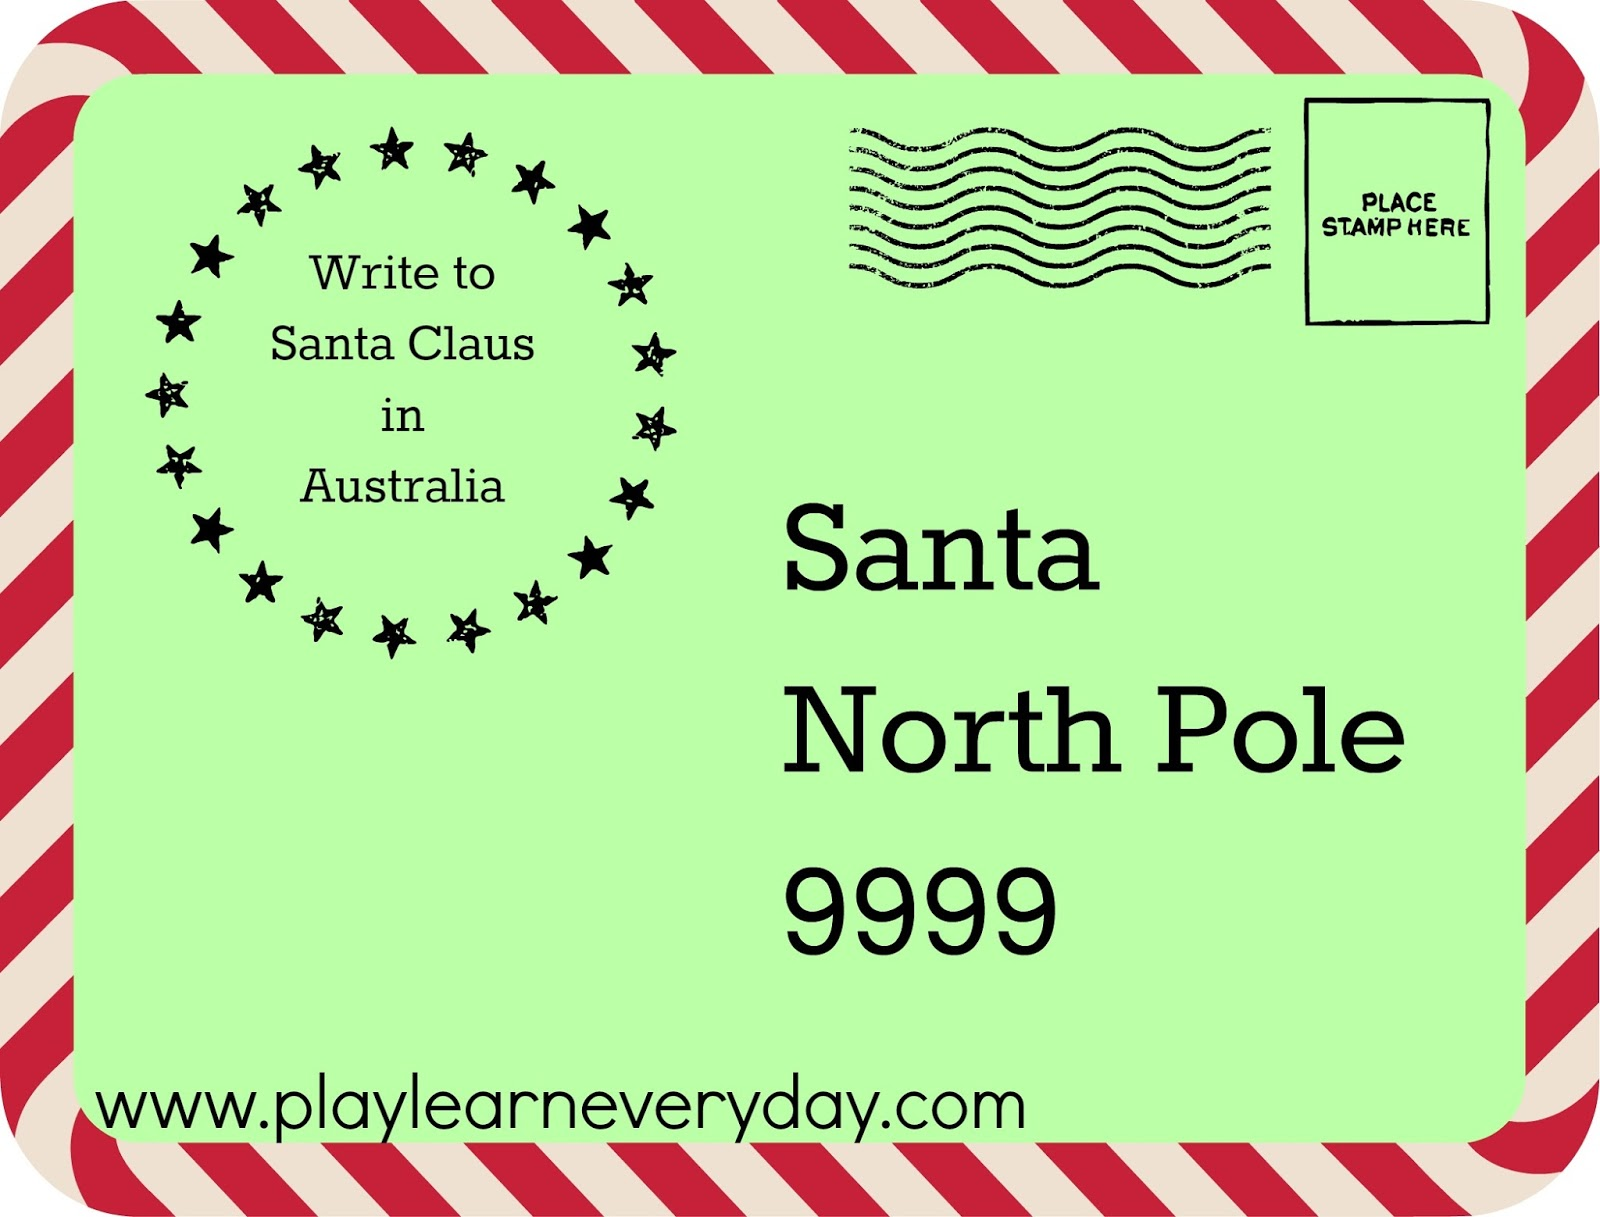 Write santa a letter and get reply canada newsinvitation in france i believe that you write your letter to pere noel online on la poste spiritdancerdesigns Gallery